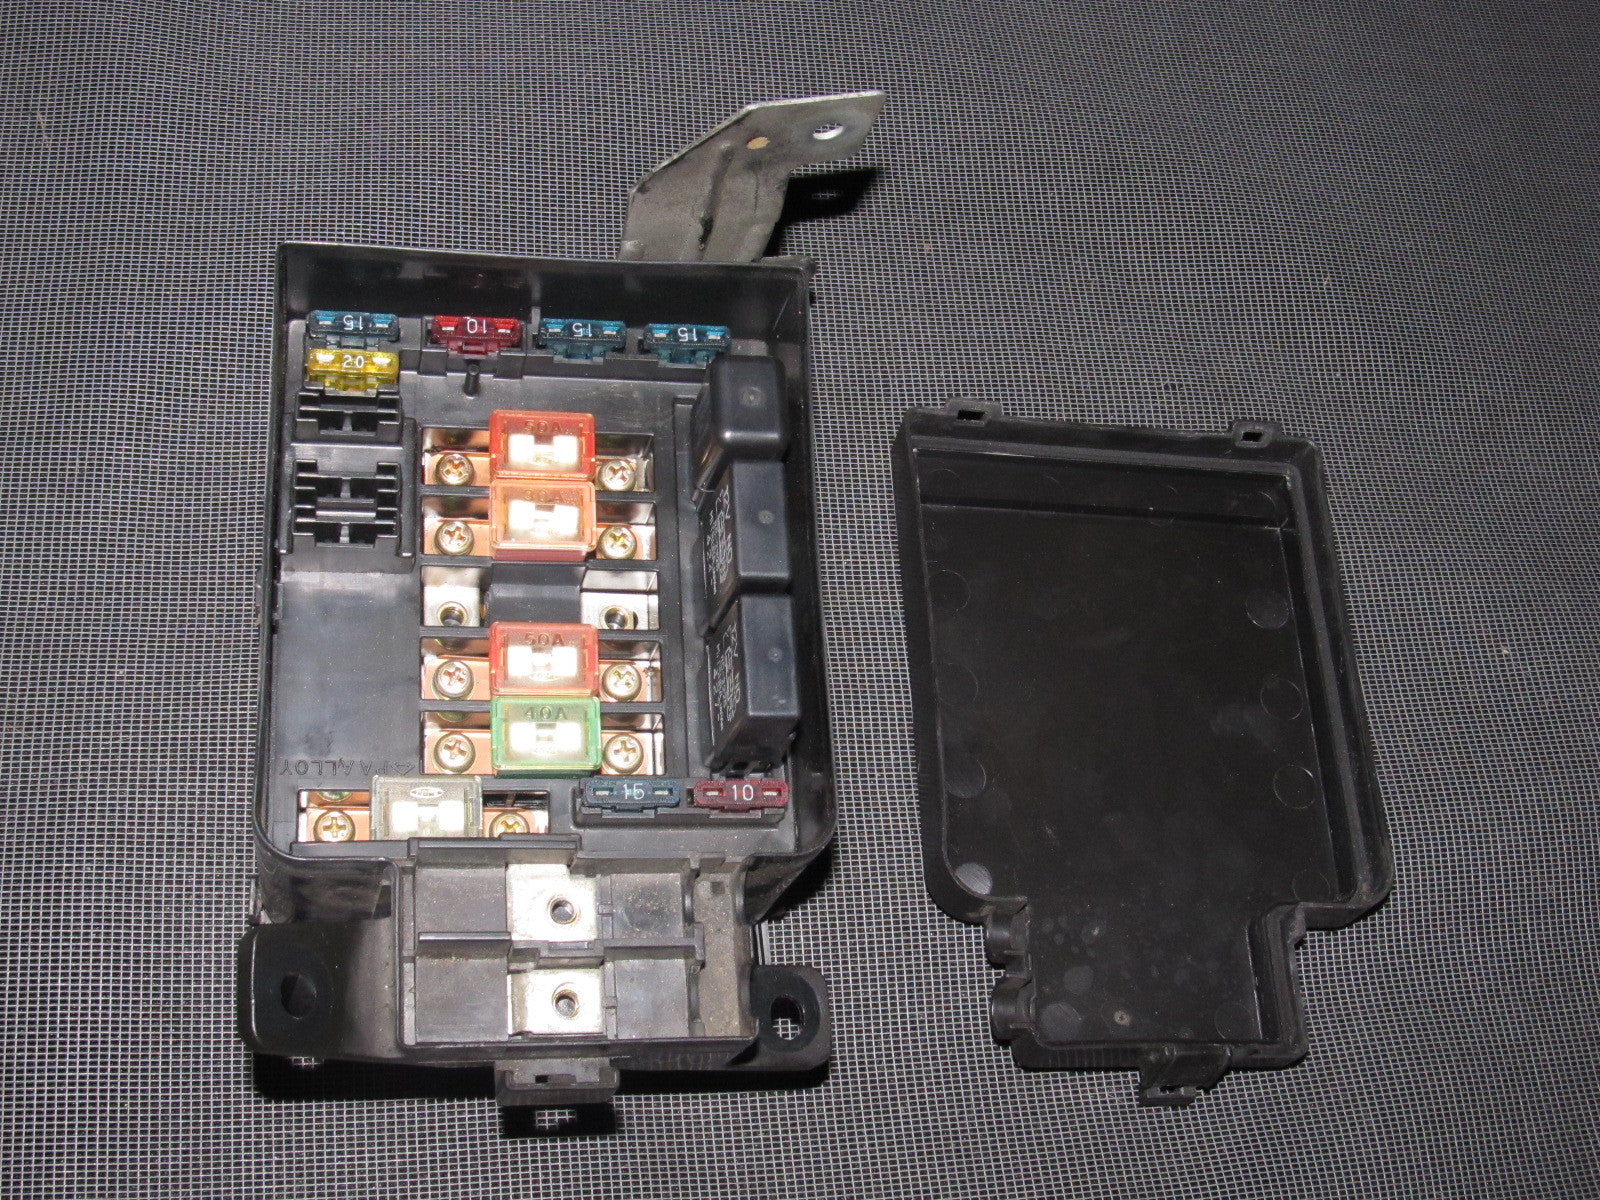 93 94 95 Honda Del Sol Oem B16 Engine Fuse Box With Relays